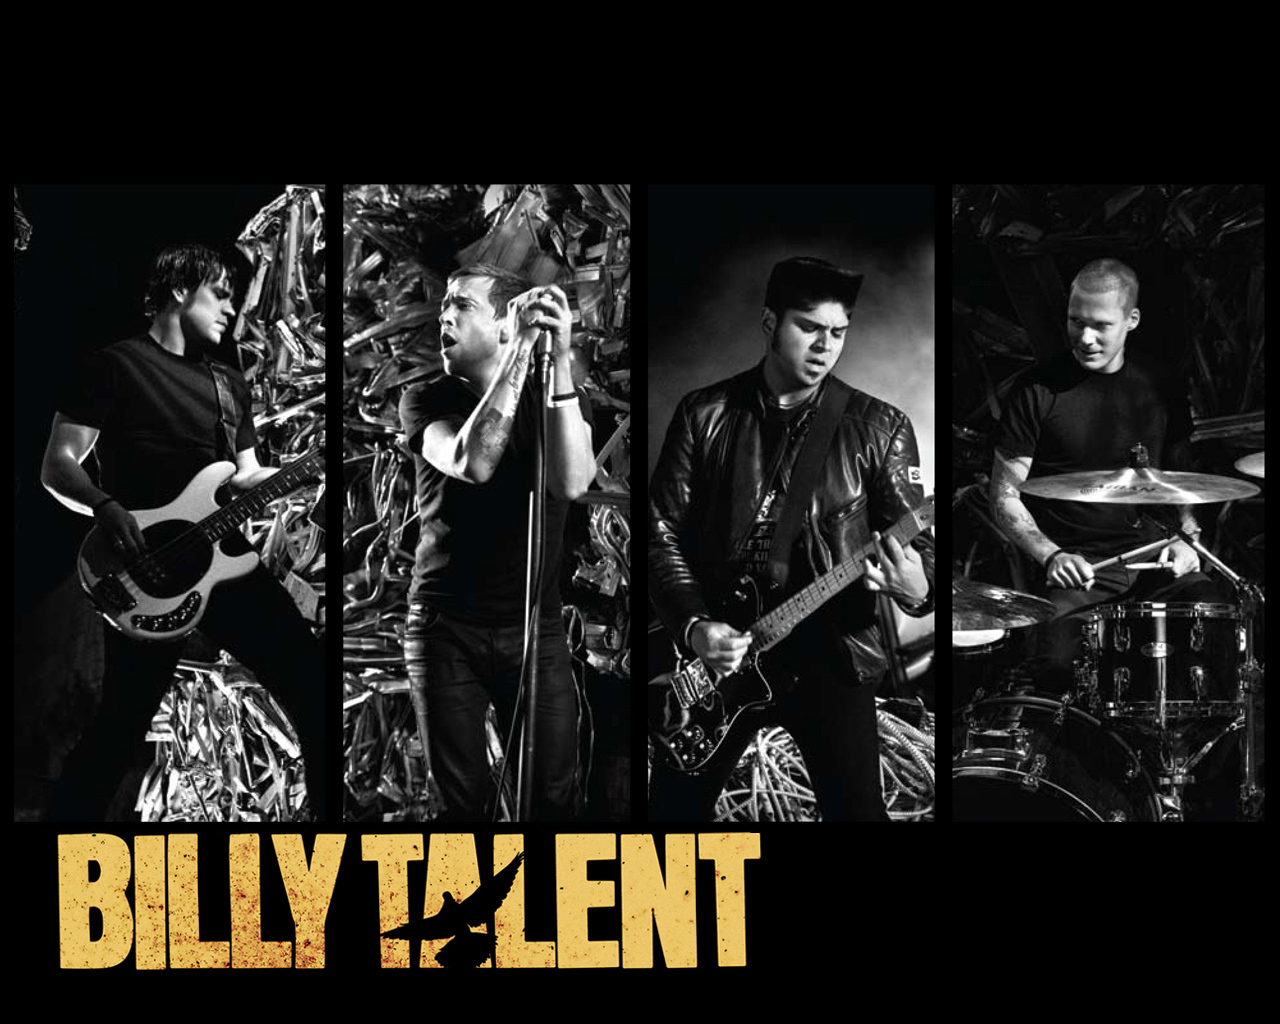 Billy-Talent-III-billy-talent-7585415-1280-1024.jpg